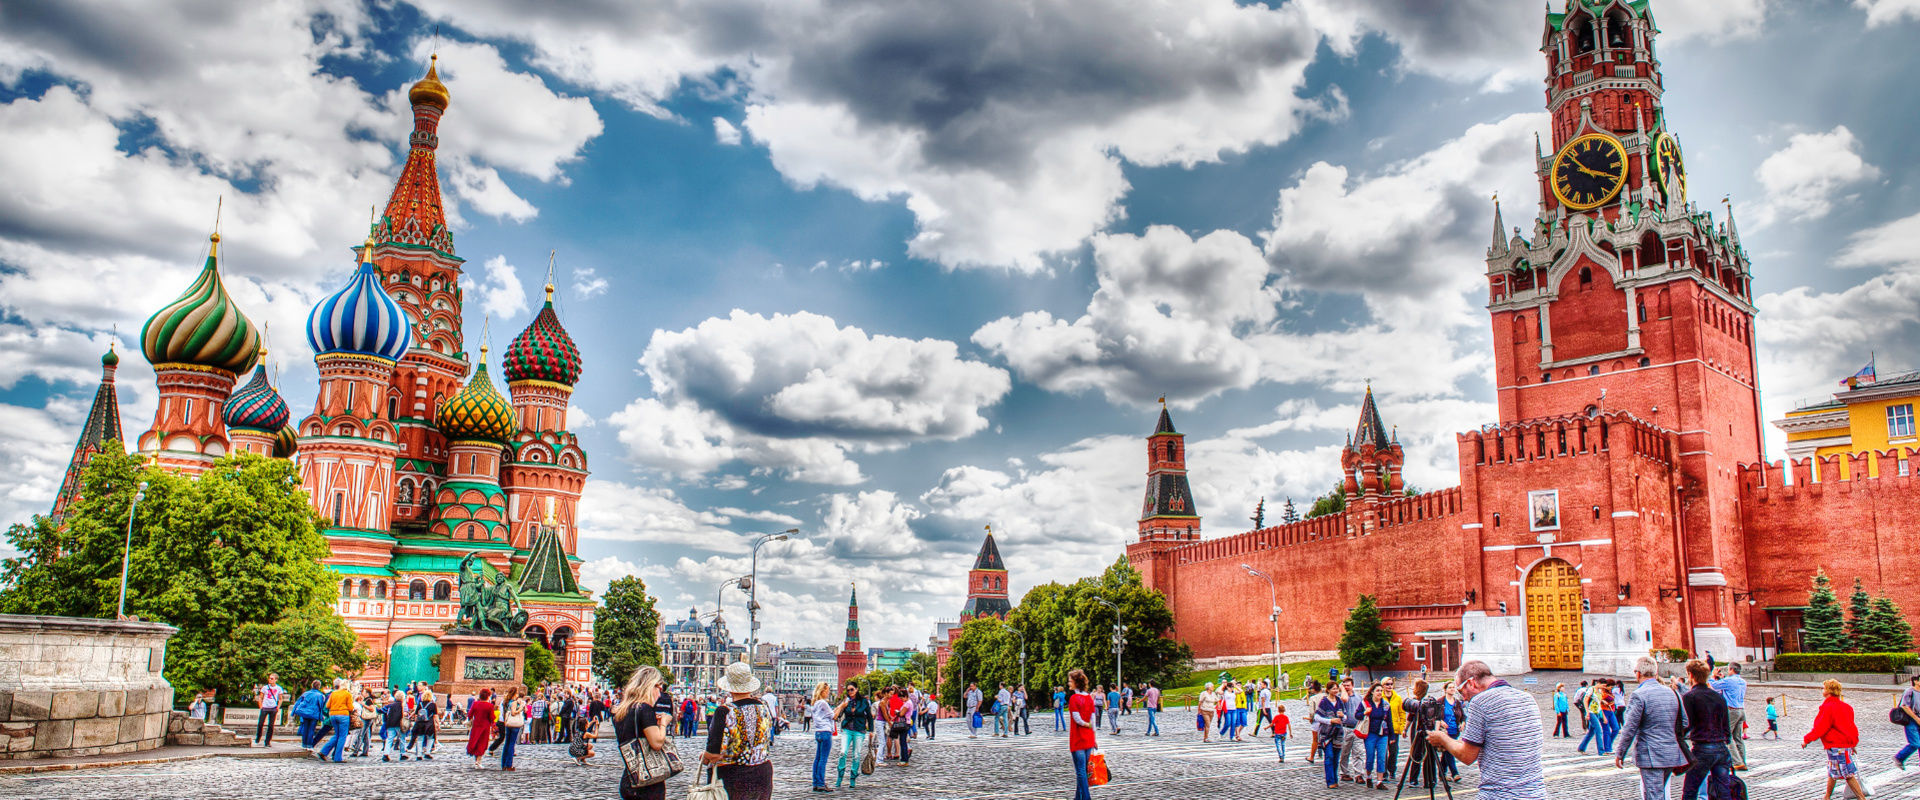 wide_fullhd_Red_square_Moscow_cityscape__8309148721_.jpg